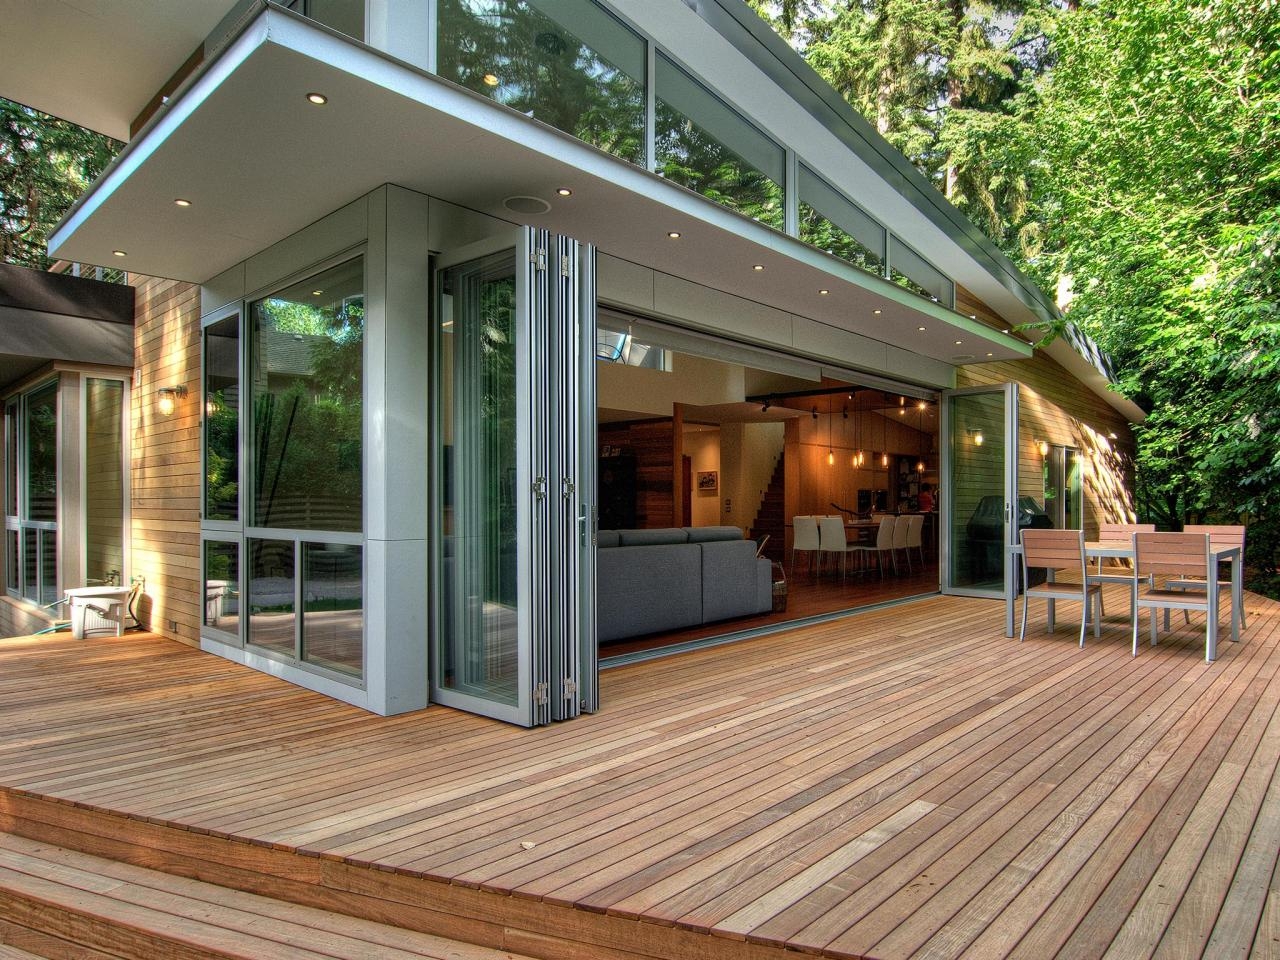 NJ Modern Real wood deck with folding glass doors on a contemporary home